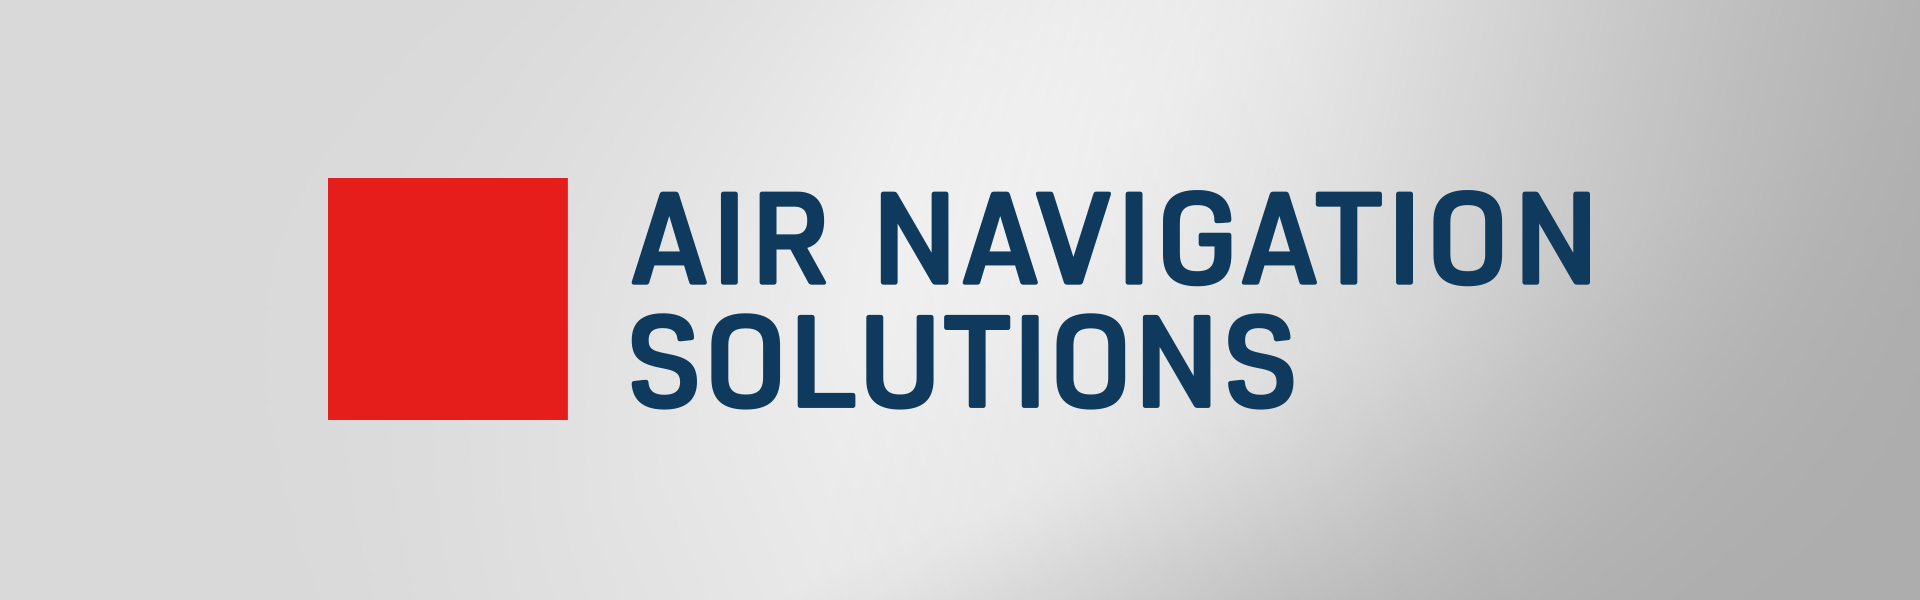 Air Navigation Solutions Logo